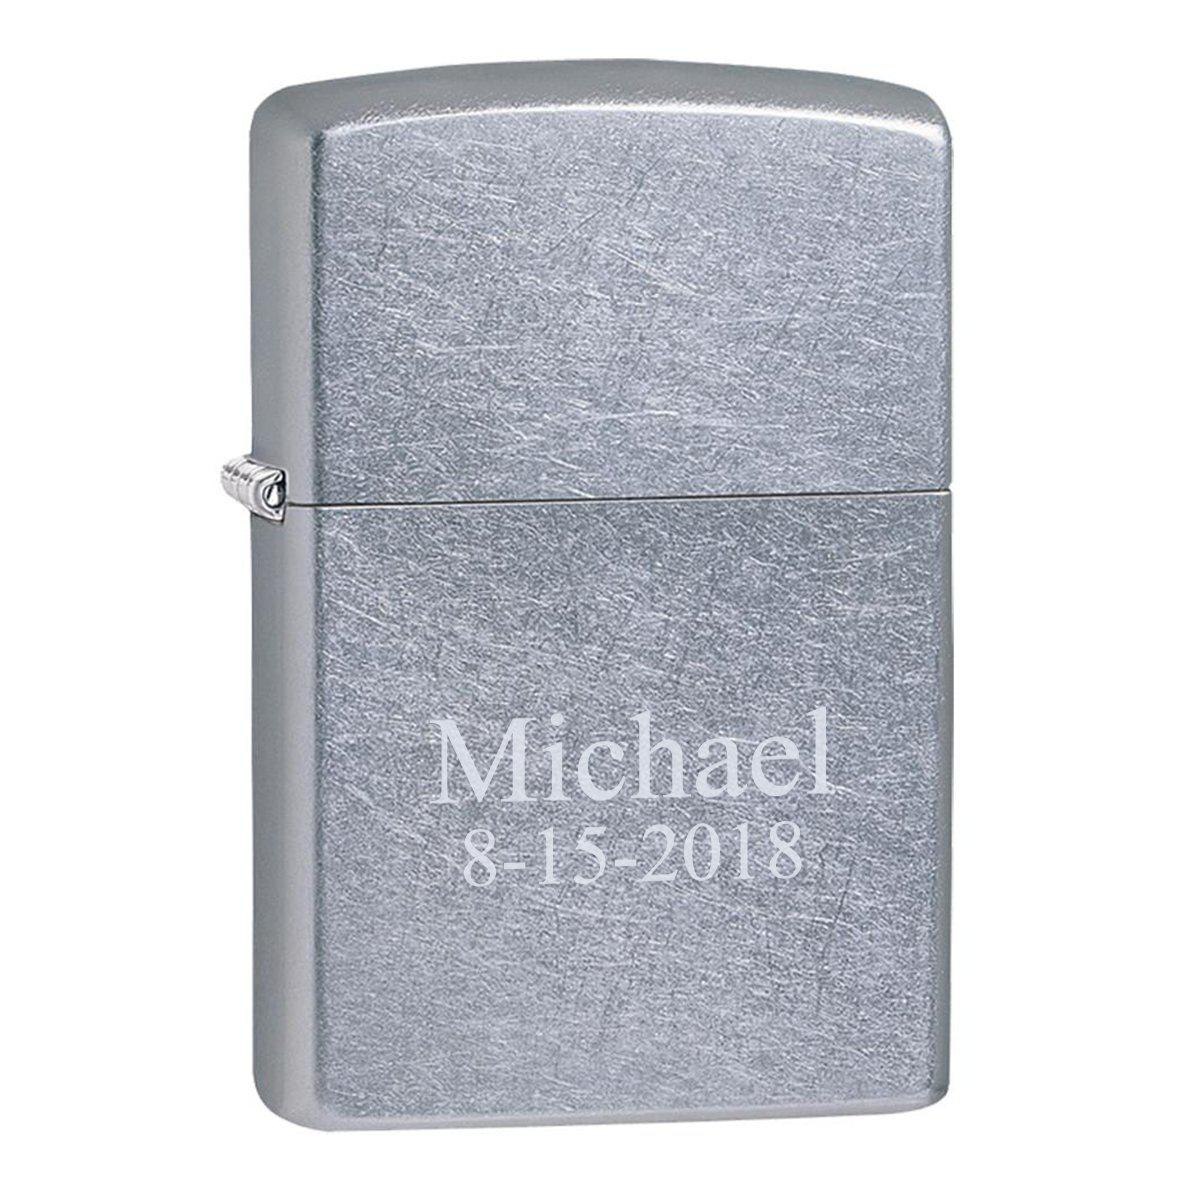 Personalized-Street-Chrome-Zippo-Lighter